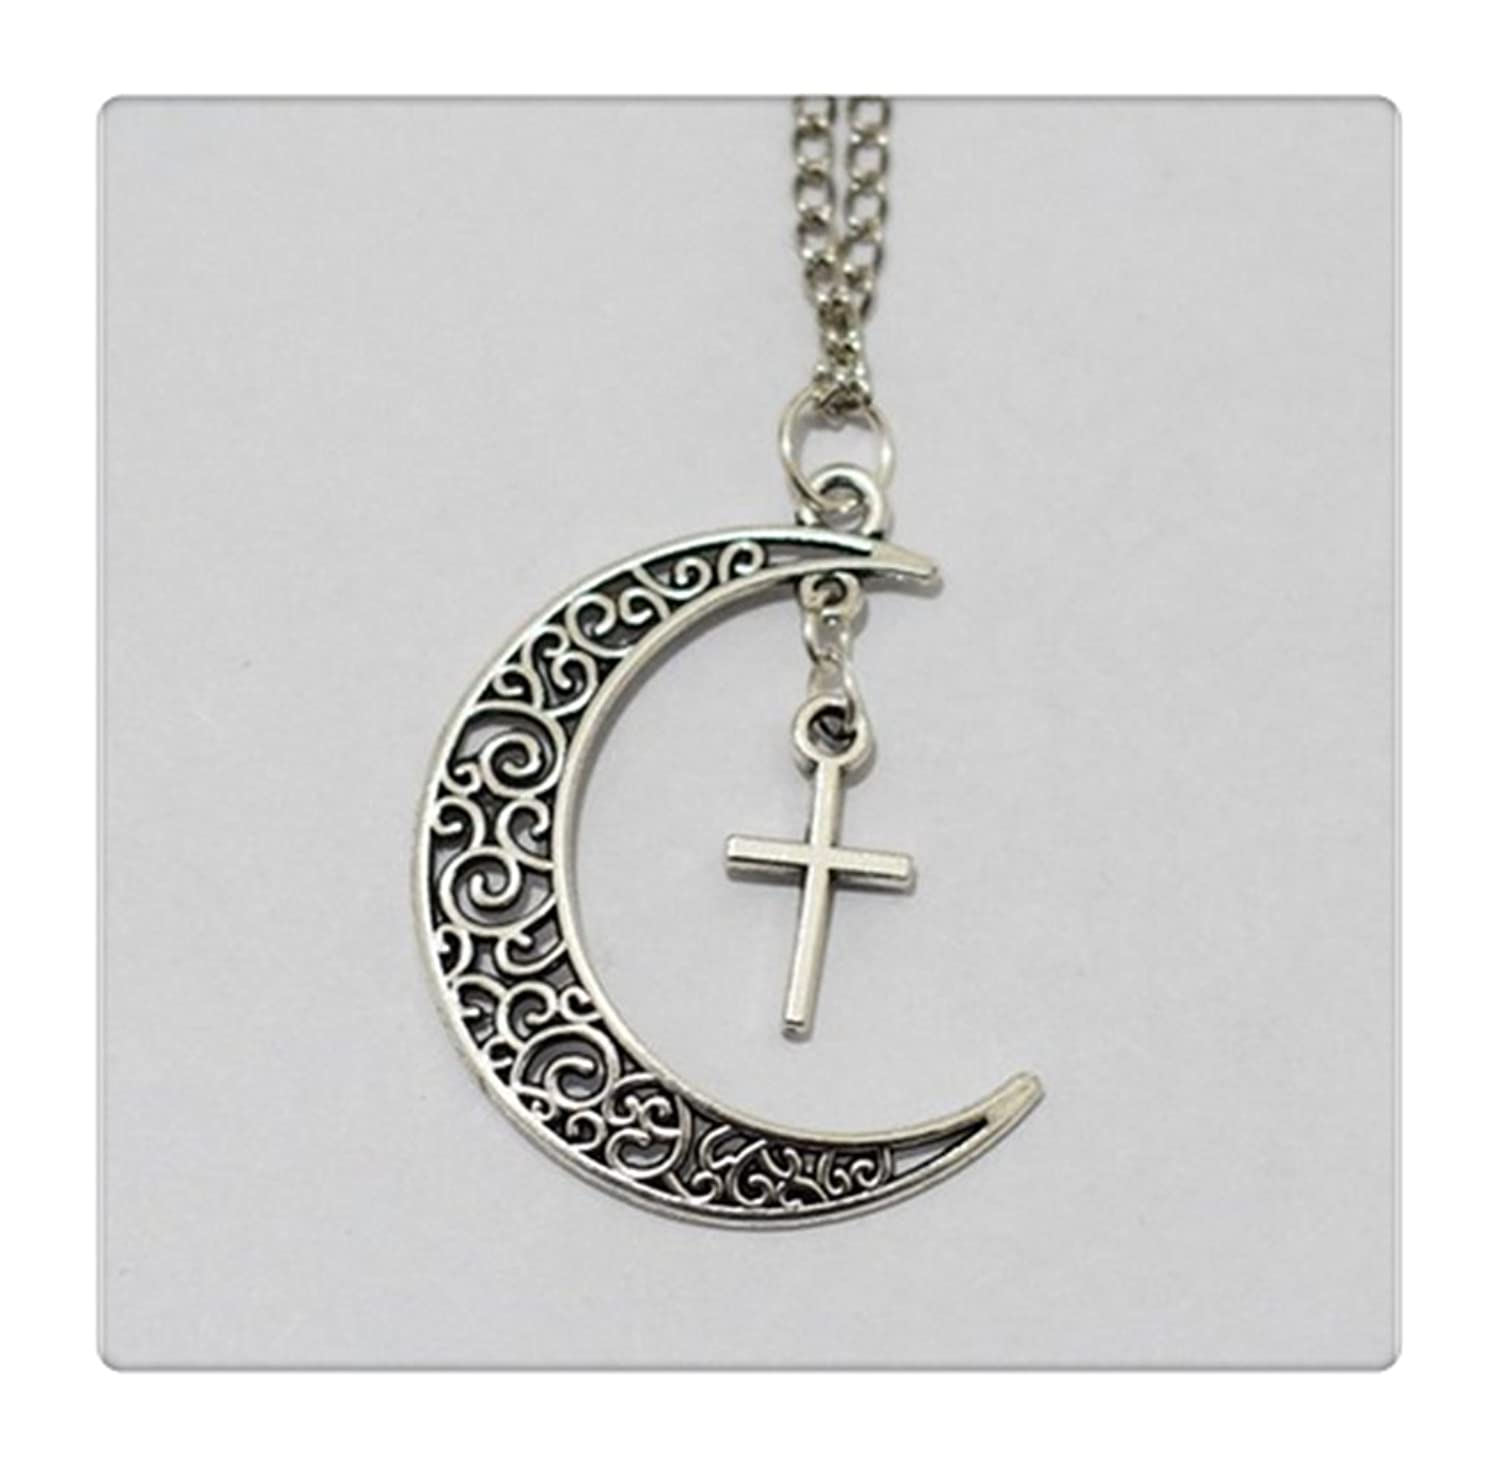 Amazon moon and cross necklace crescent moon girl symbol amazon moon and cross necklace crescent moon girl symbol necklace cross moon necklace jewelry necklace jewelry buycottarizona Image collections